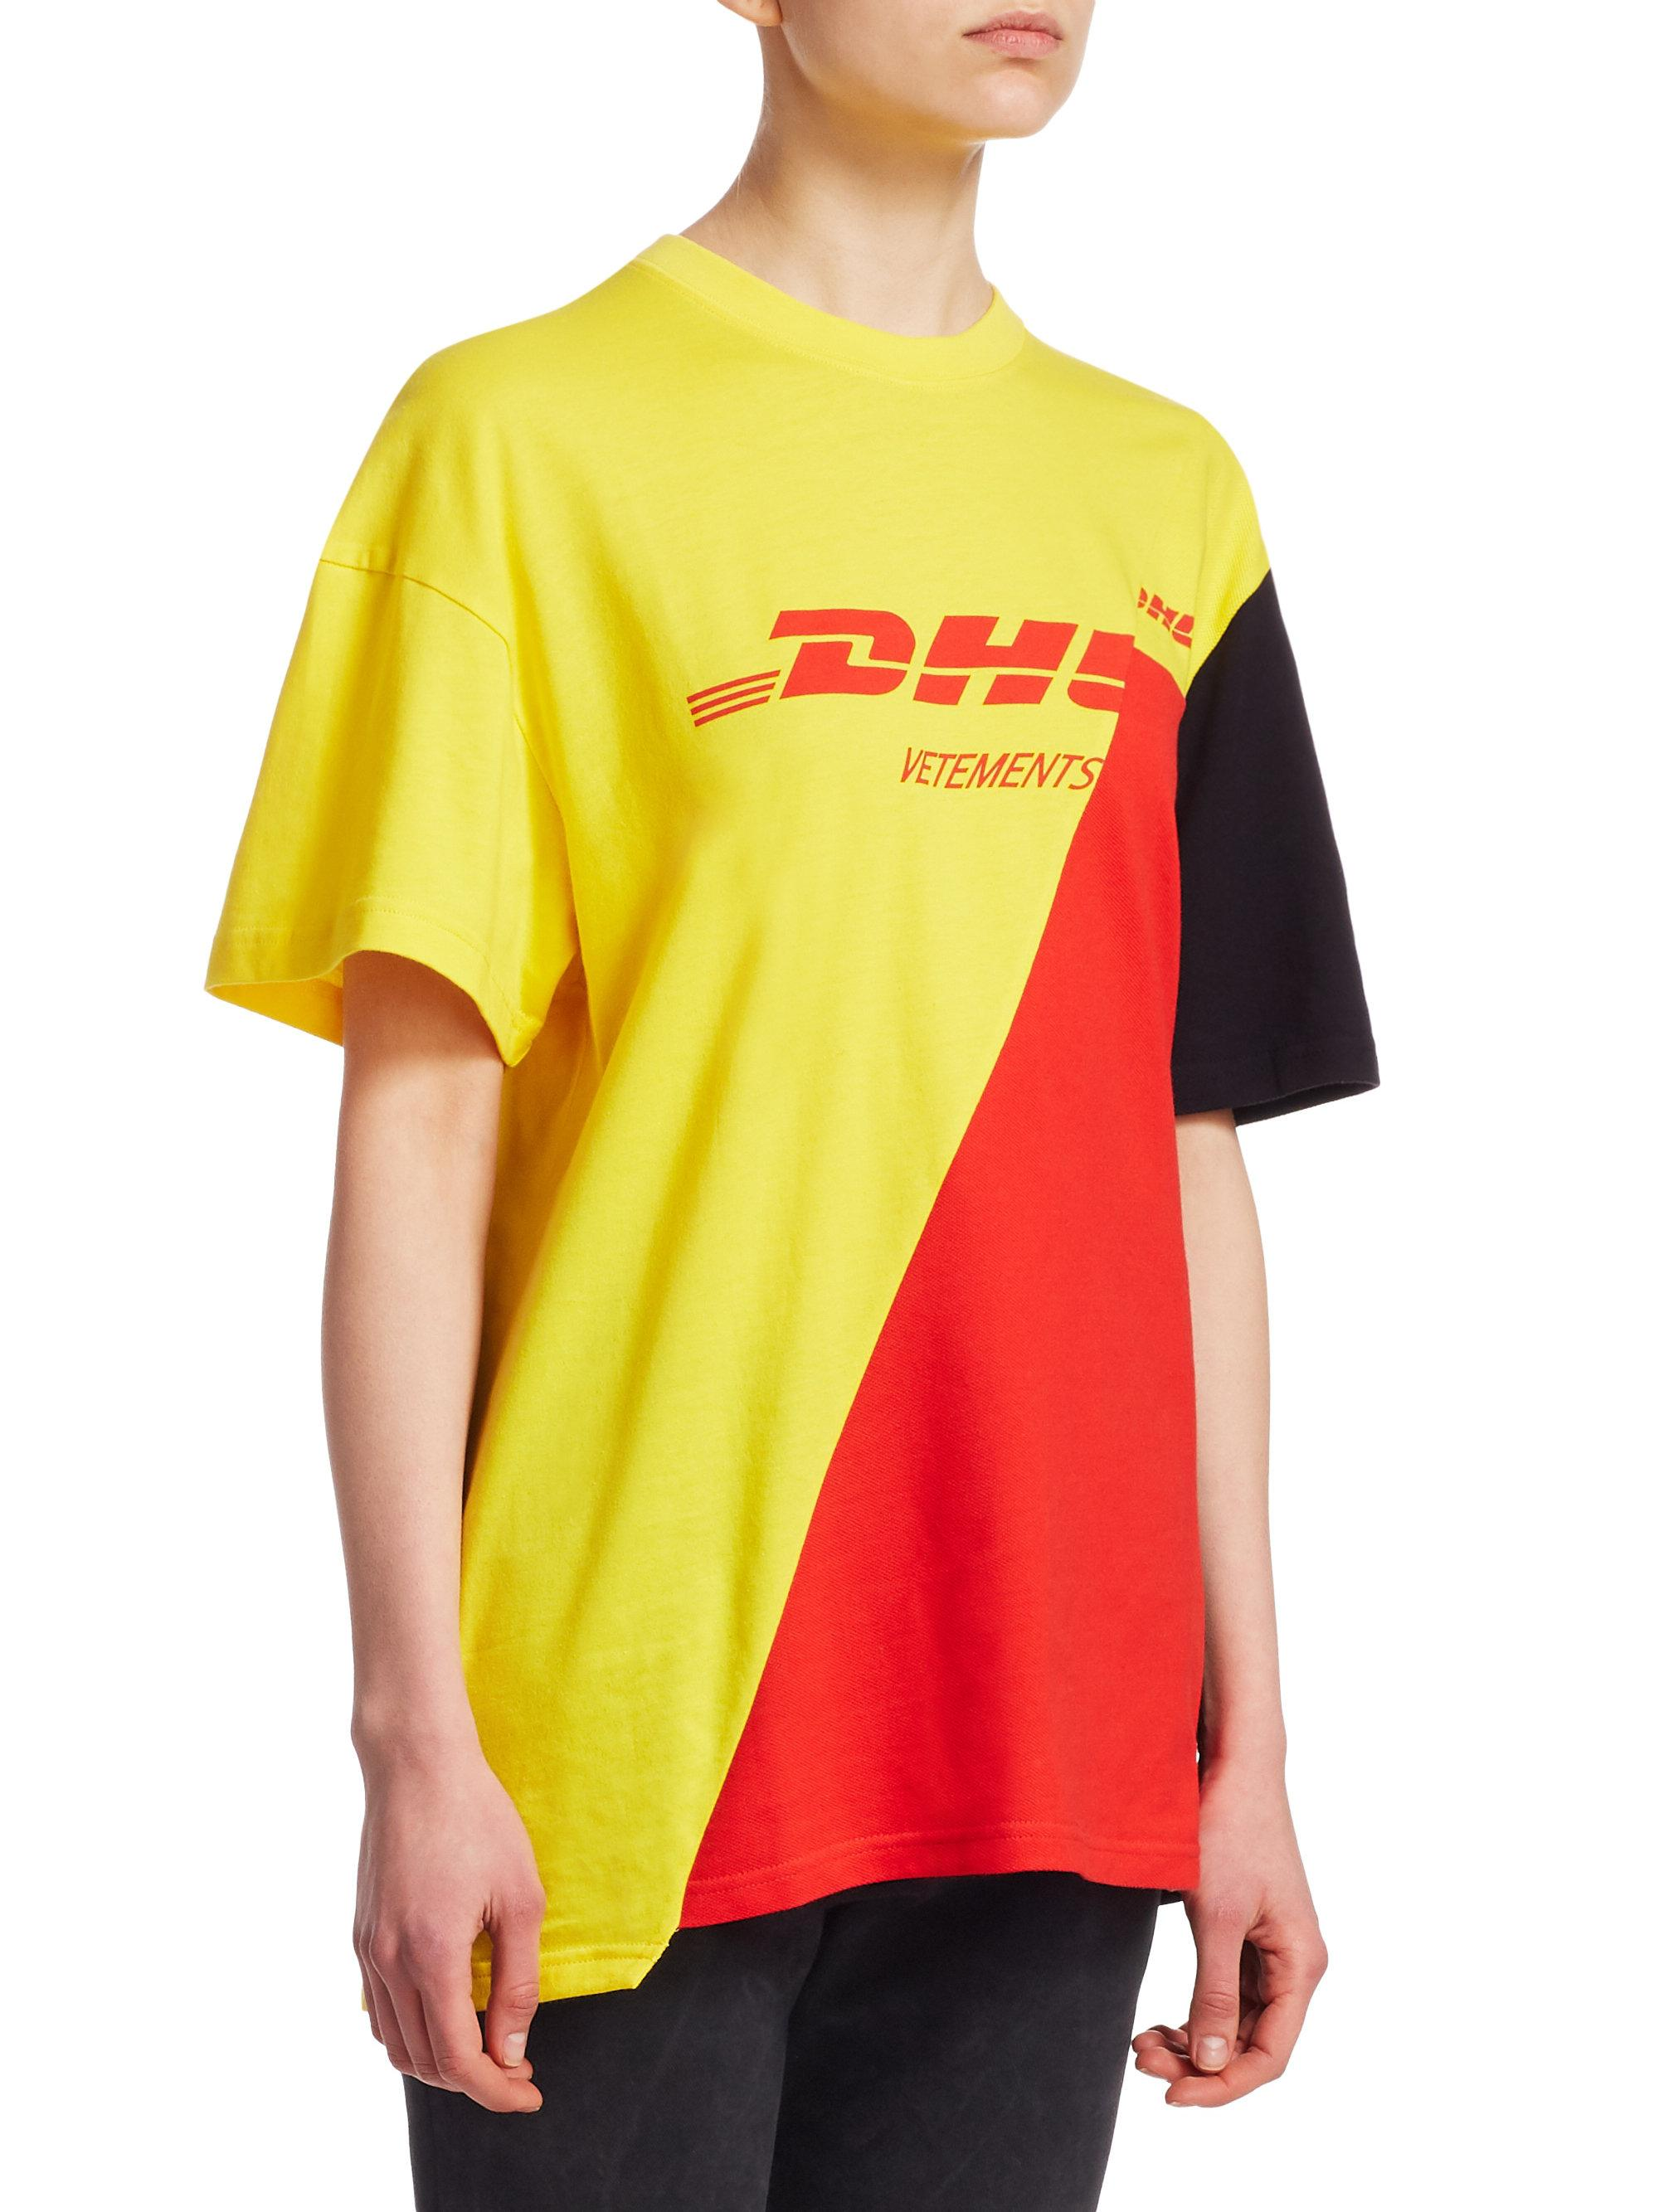 x DHL Cutup Tee in Black,Red,Yellow VETEMENTS